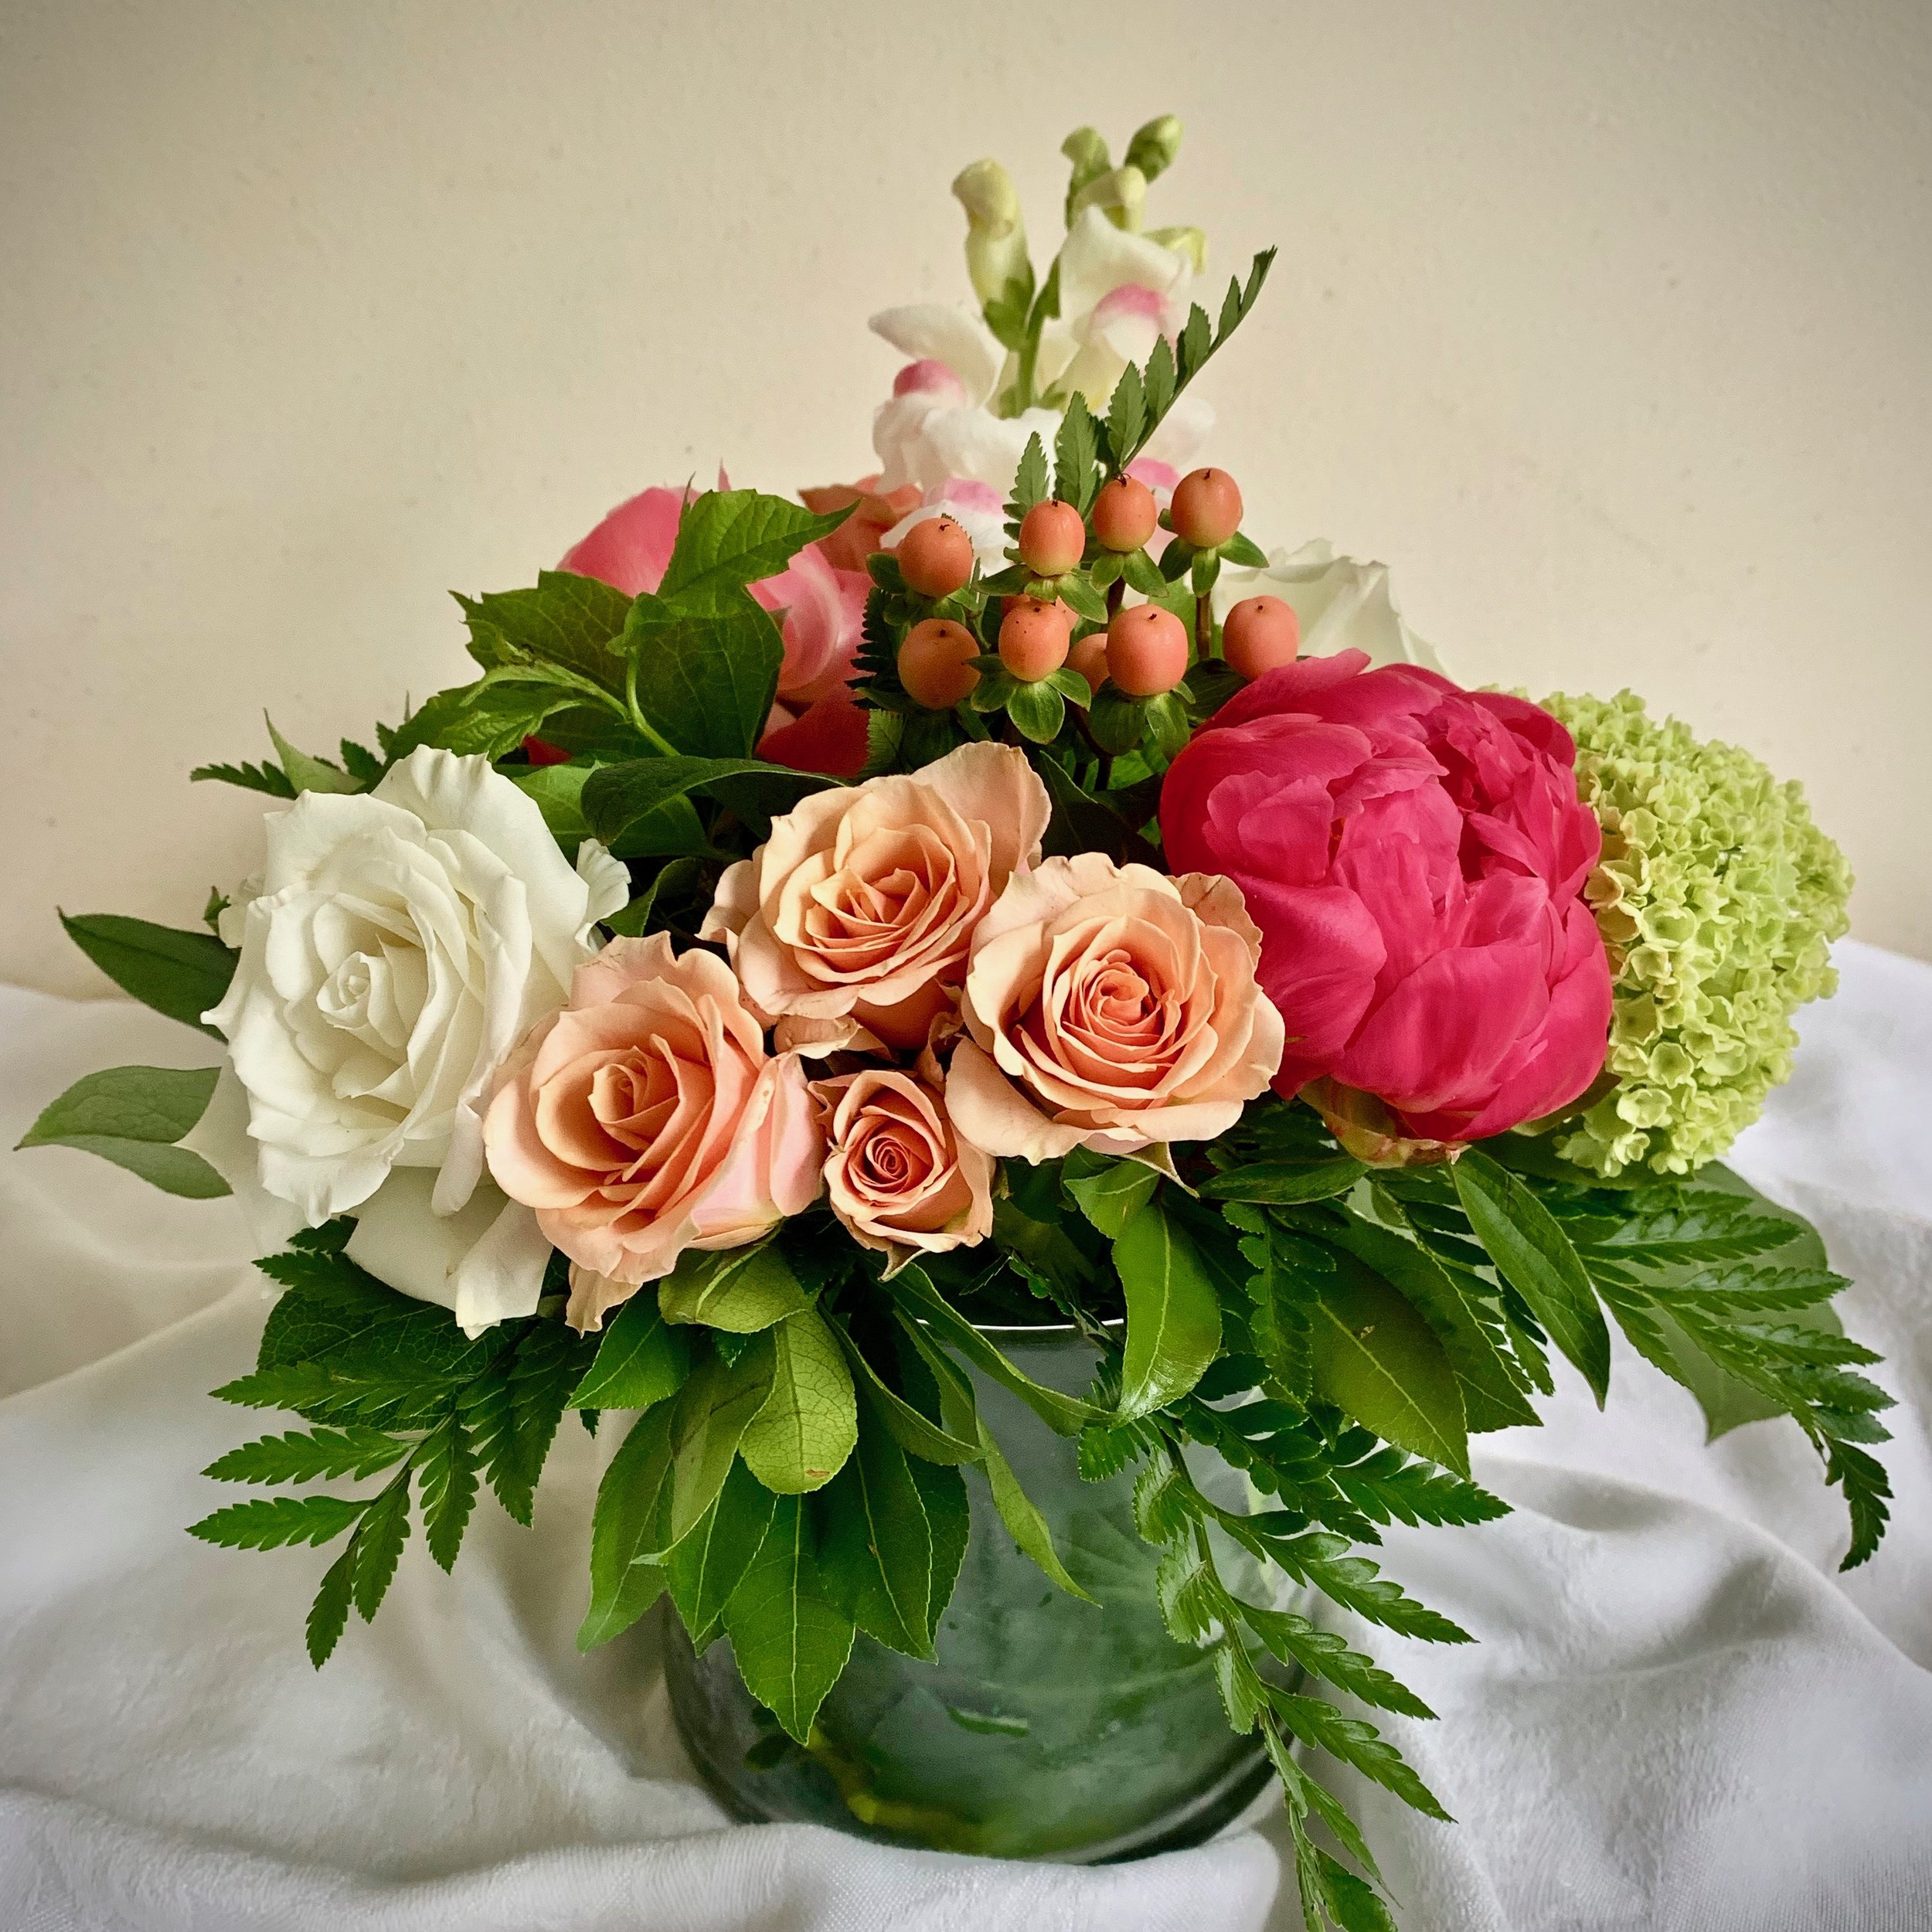 PREMIUM PEONY CENTERPIECE  with lime  hydrangea, spray roses and roses in a leaf-lined vase, $55.